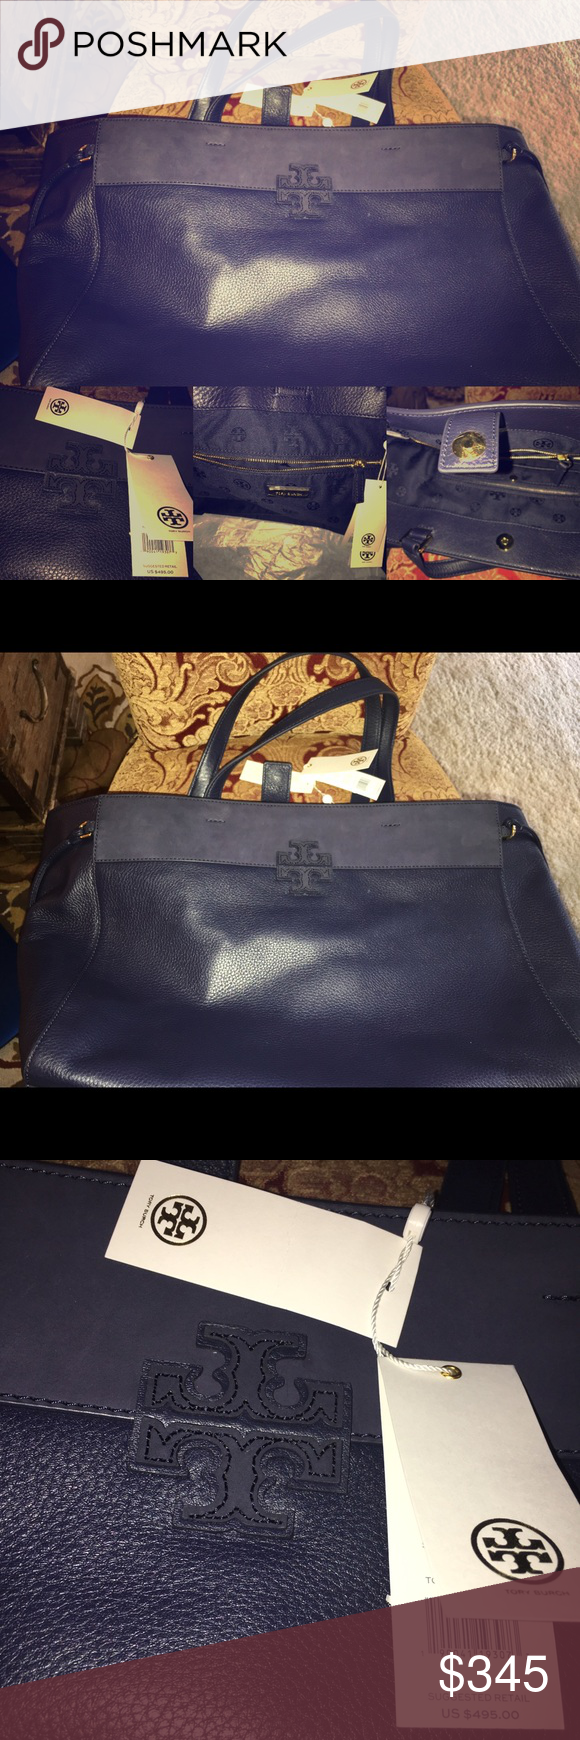 245dc8e74f8 SALE ⚡ ⚡️Huge Tory Burch Stacked-T Mixed 🦋🦋 🌈🌈🌈💯 Authentic Tory Burch  Stacked-T Mixed Material Tote / Tory Navy. Made of nubuck with unique ...